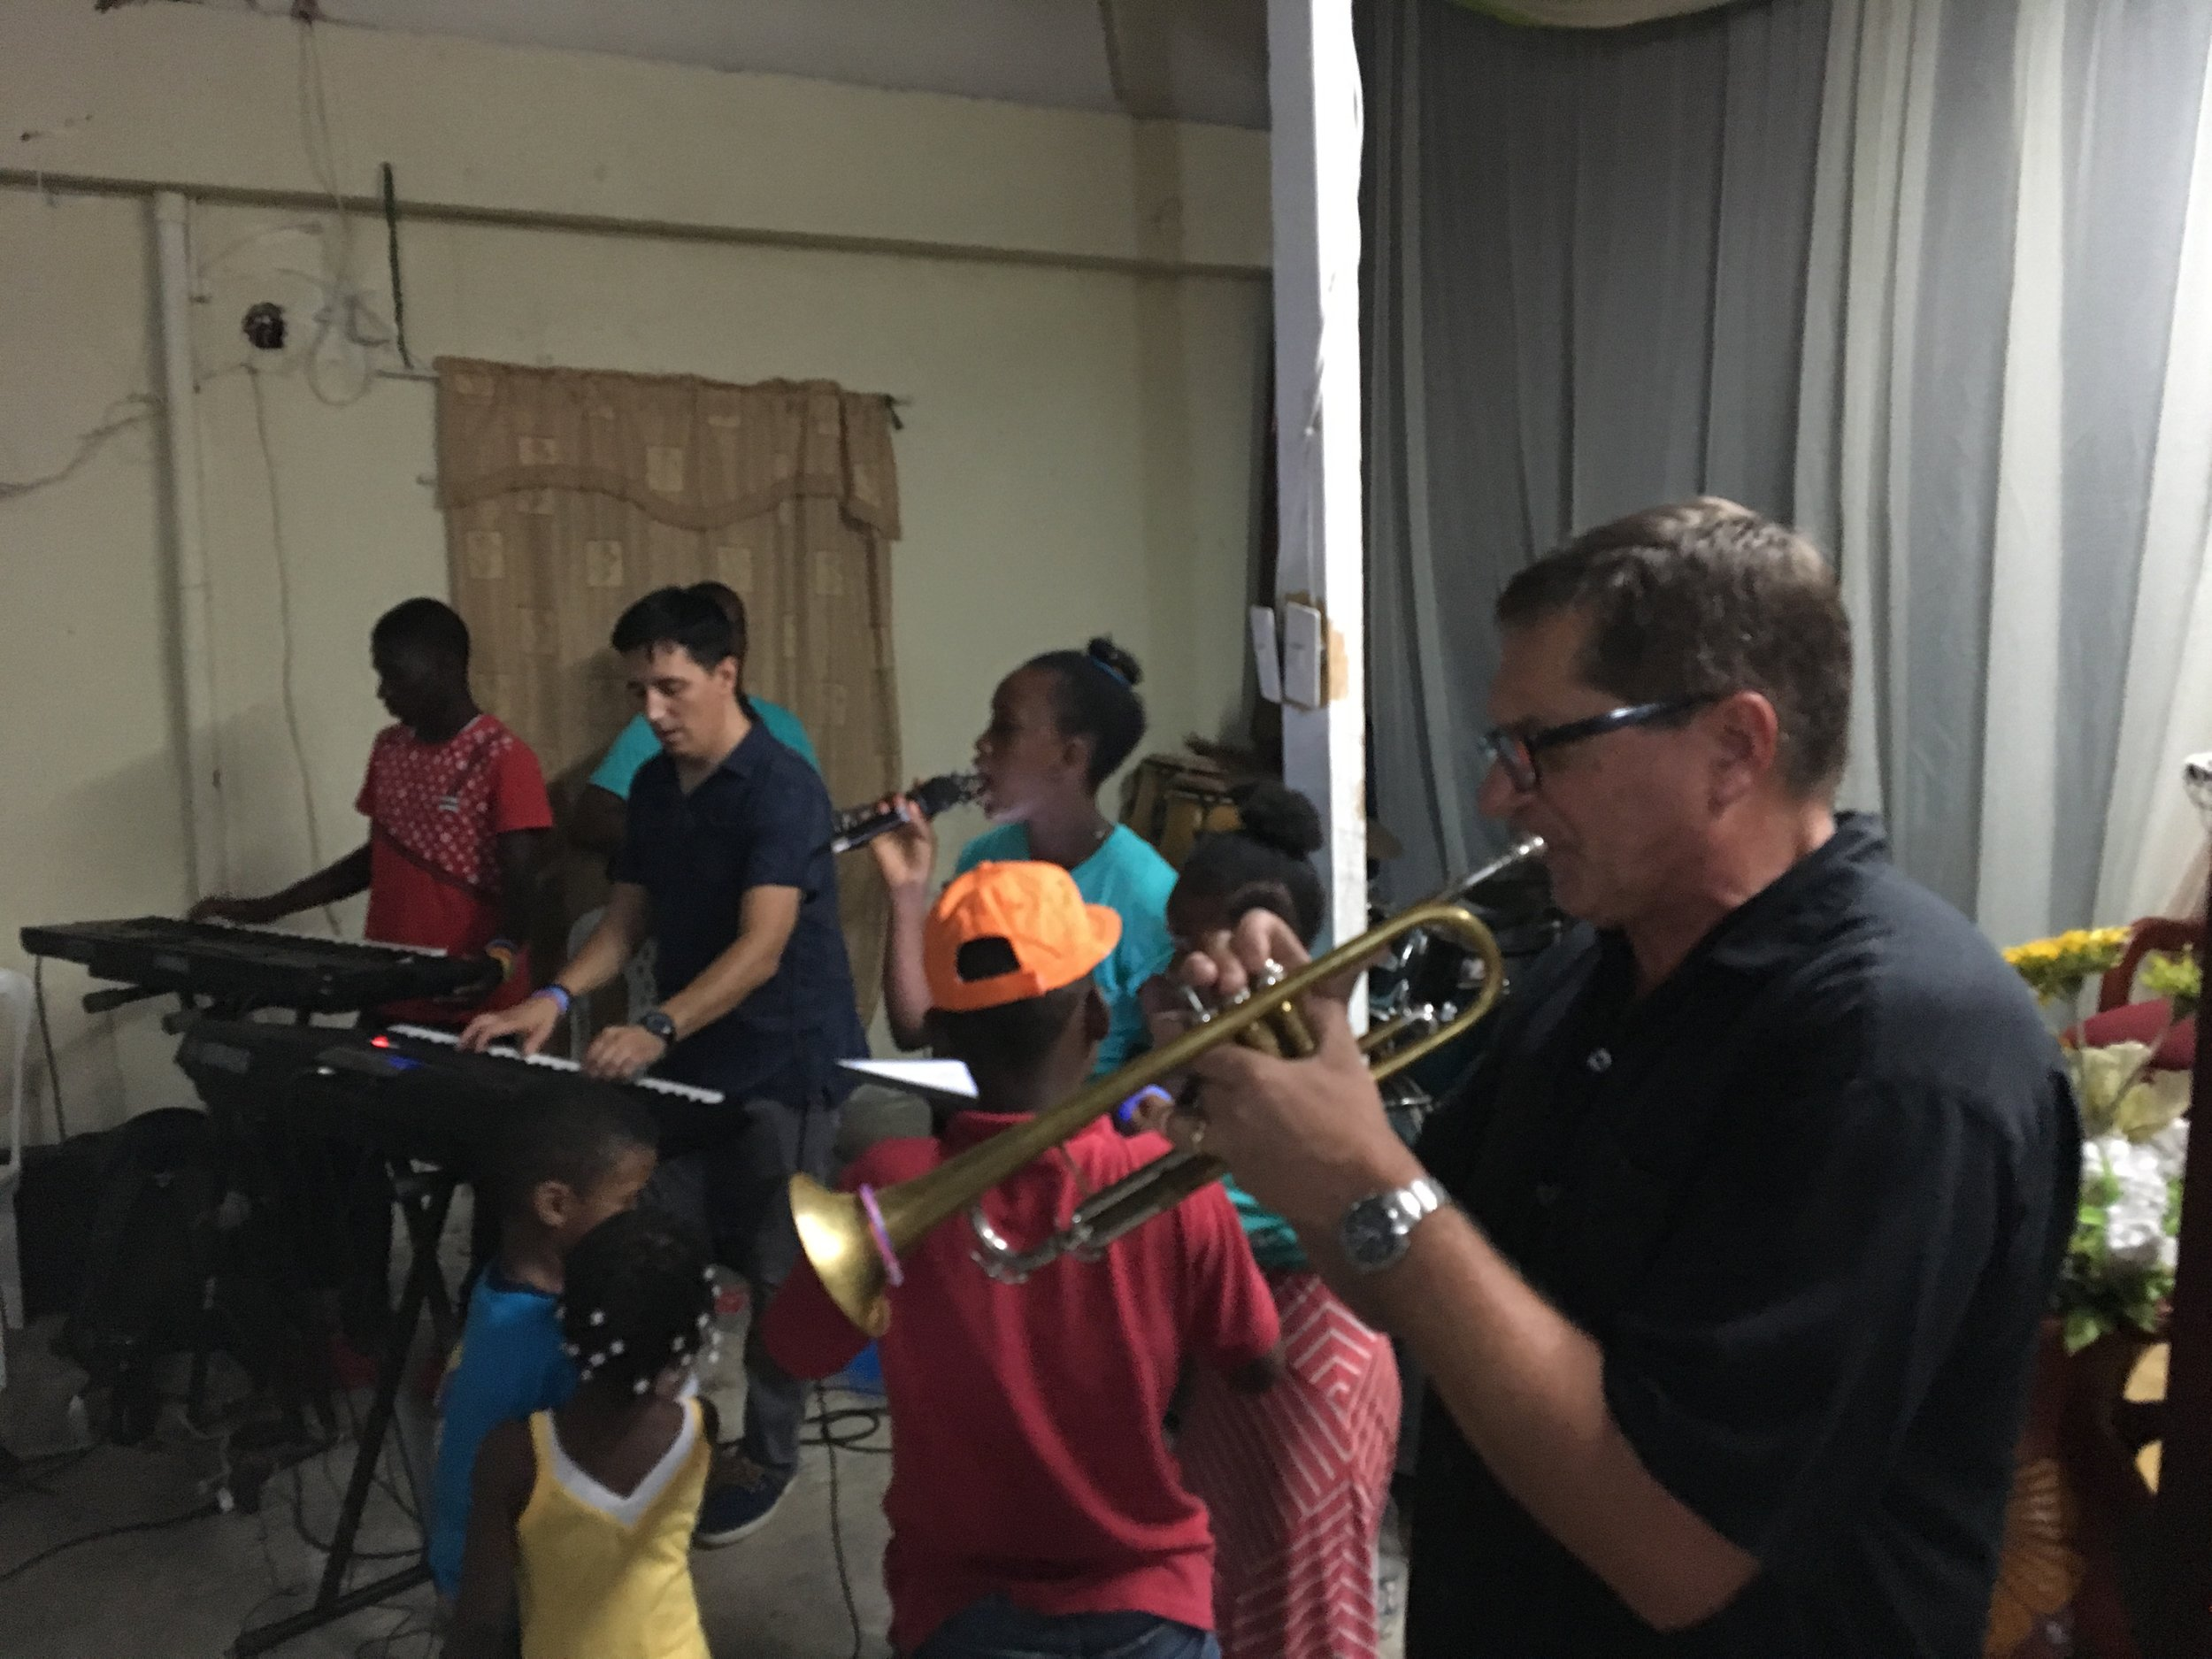 From the AP Mission Team 2018 trip to La Romana, Dominican Republic - Craig and Dave with musicians at Iglesia Bautista Luz Divina, our mission partner congregation